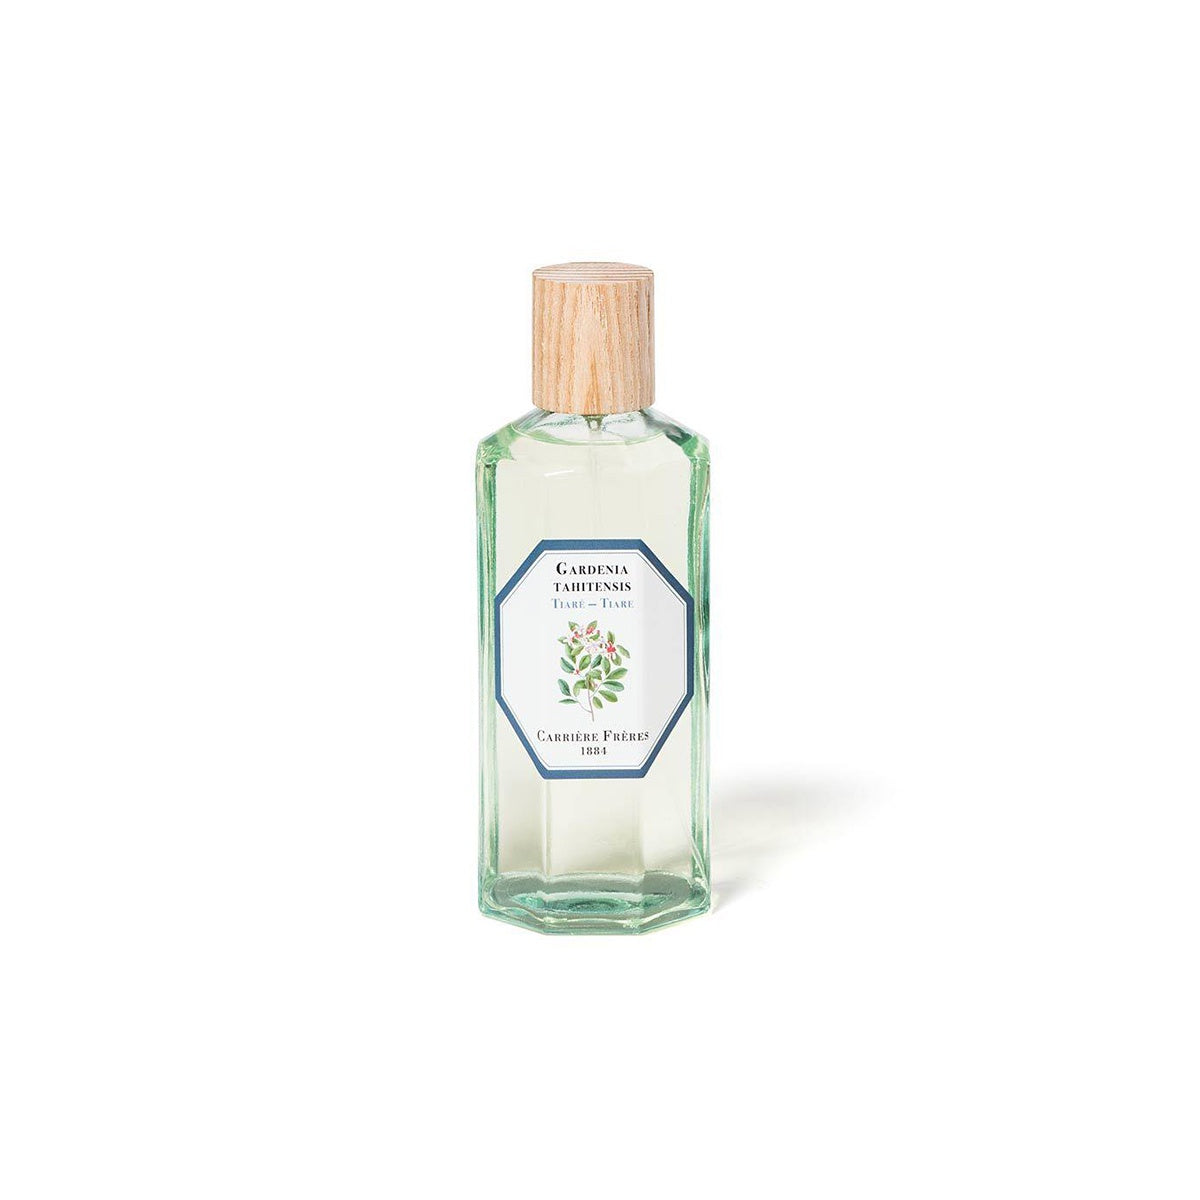 Carriere Freres Tiare Room Spray 200ml